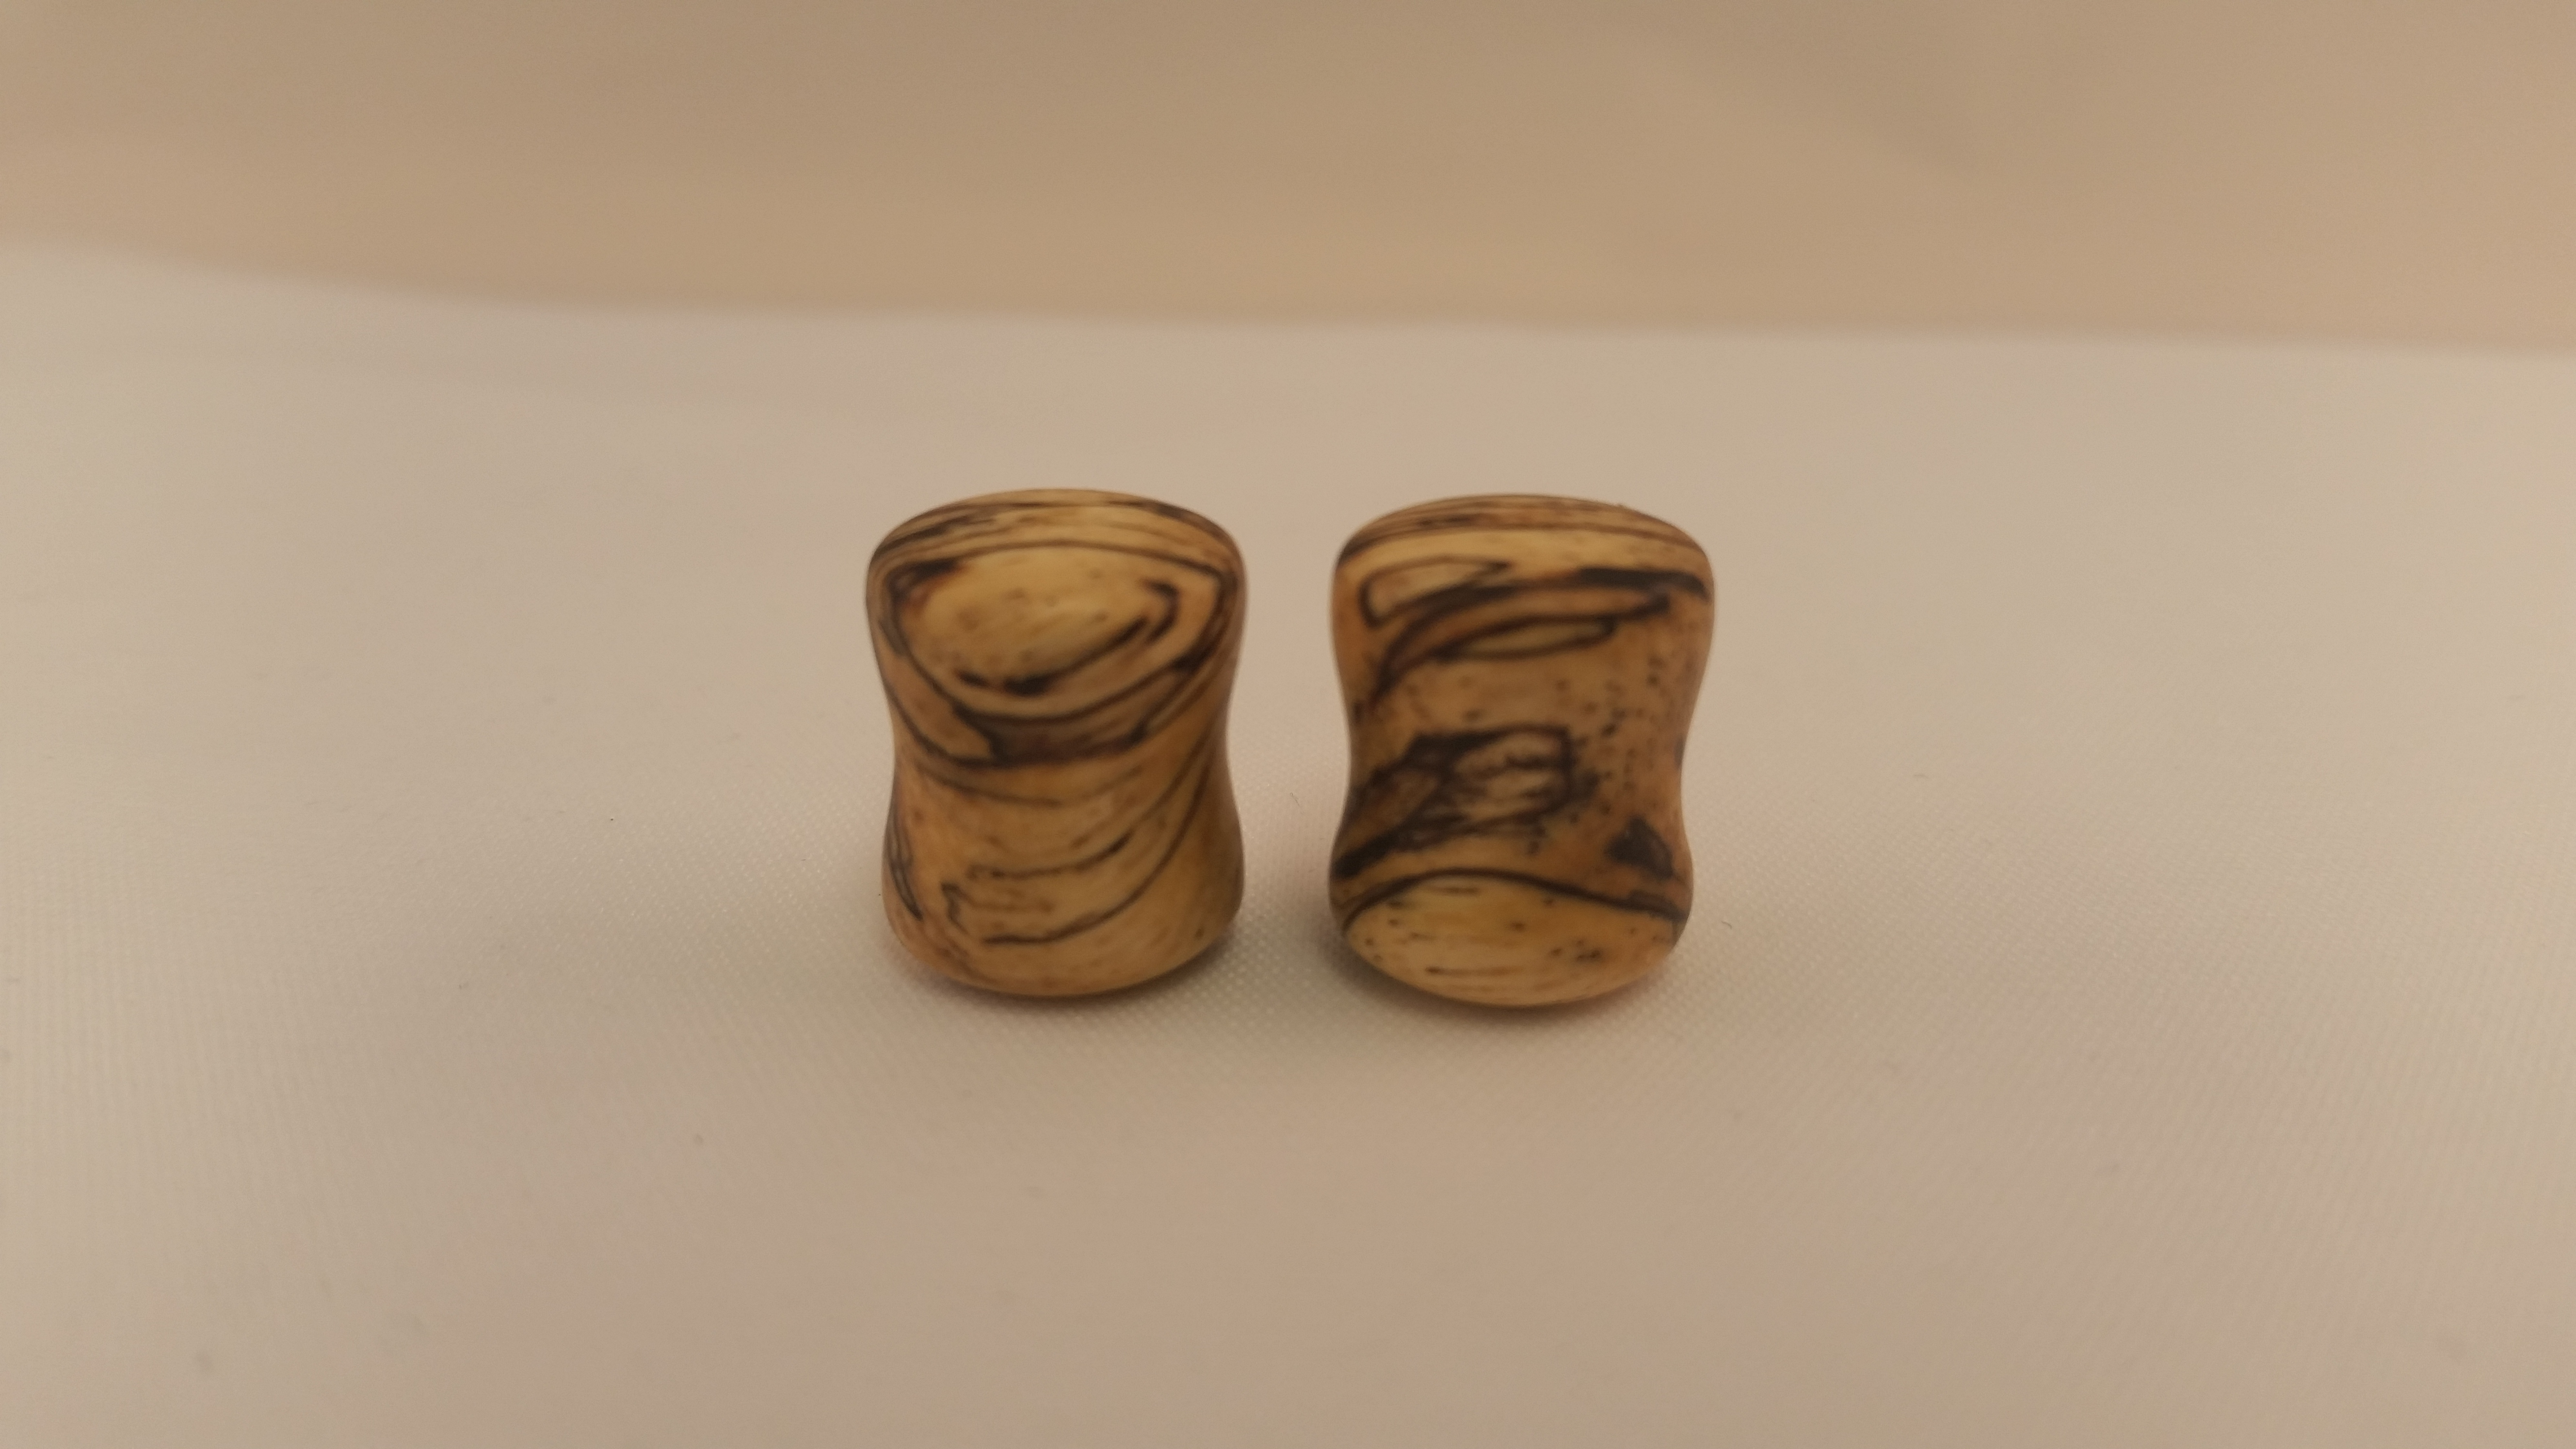 Spalted tamarind wood plugs 7 16 wingnut tattoo and for Tattoo shops in st cloud mn